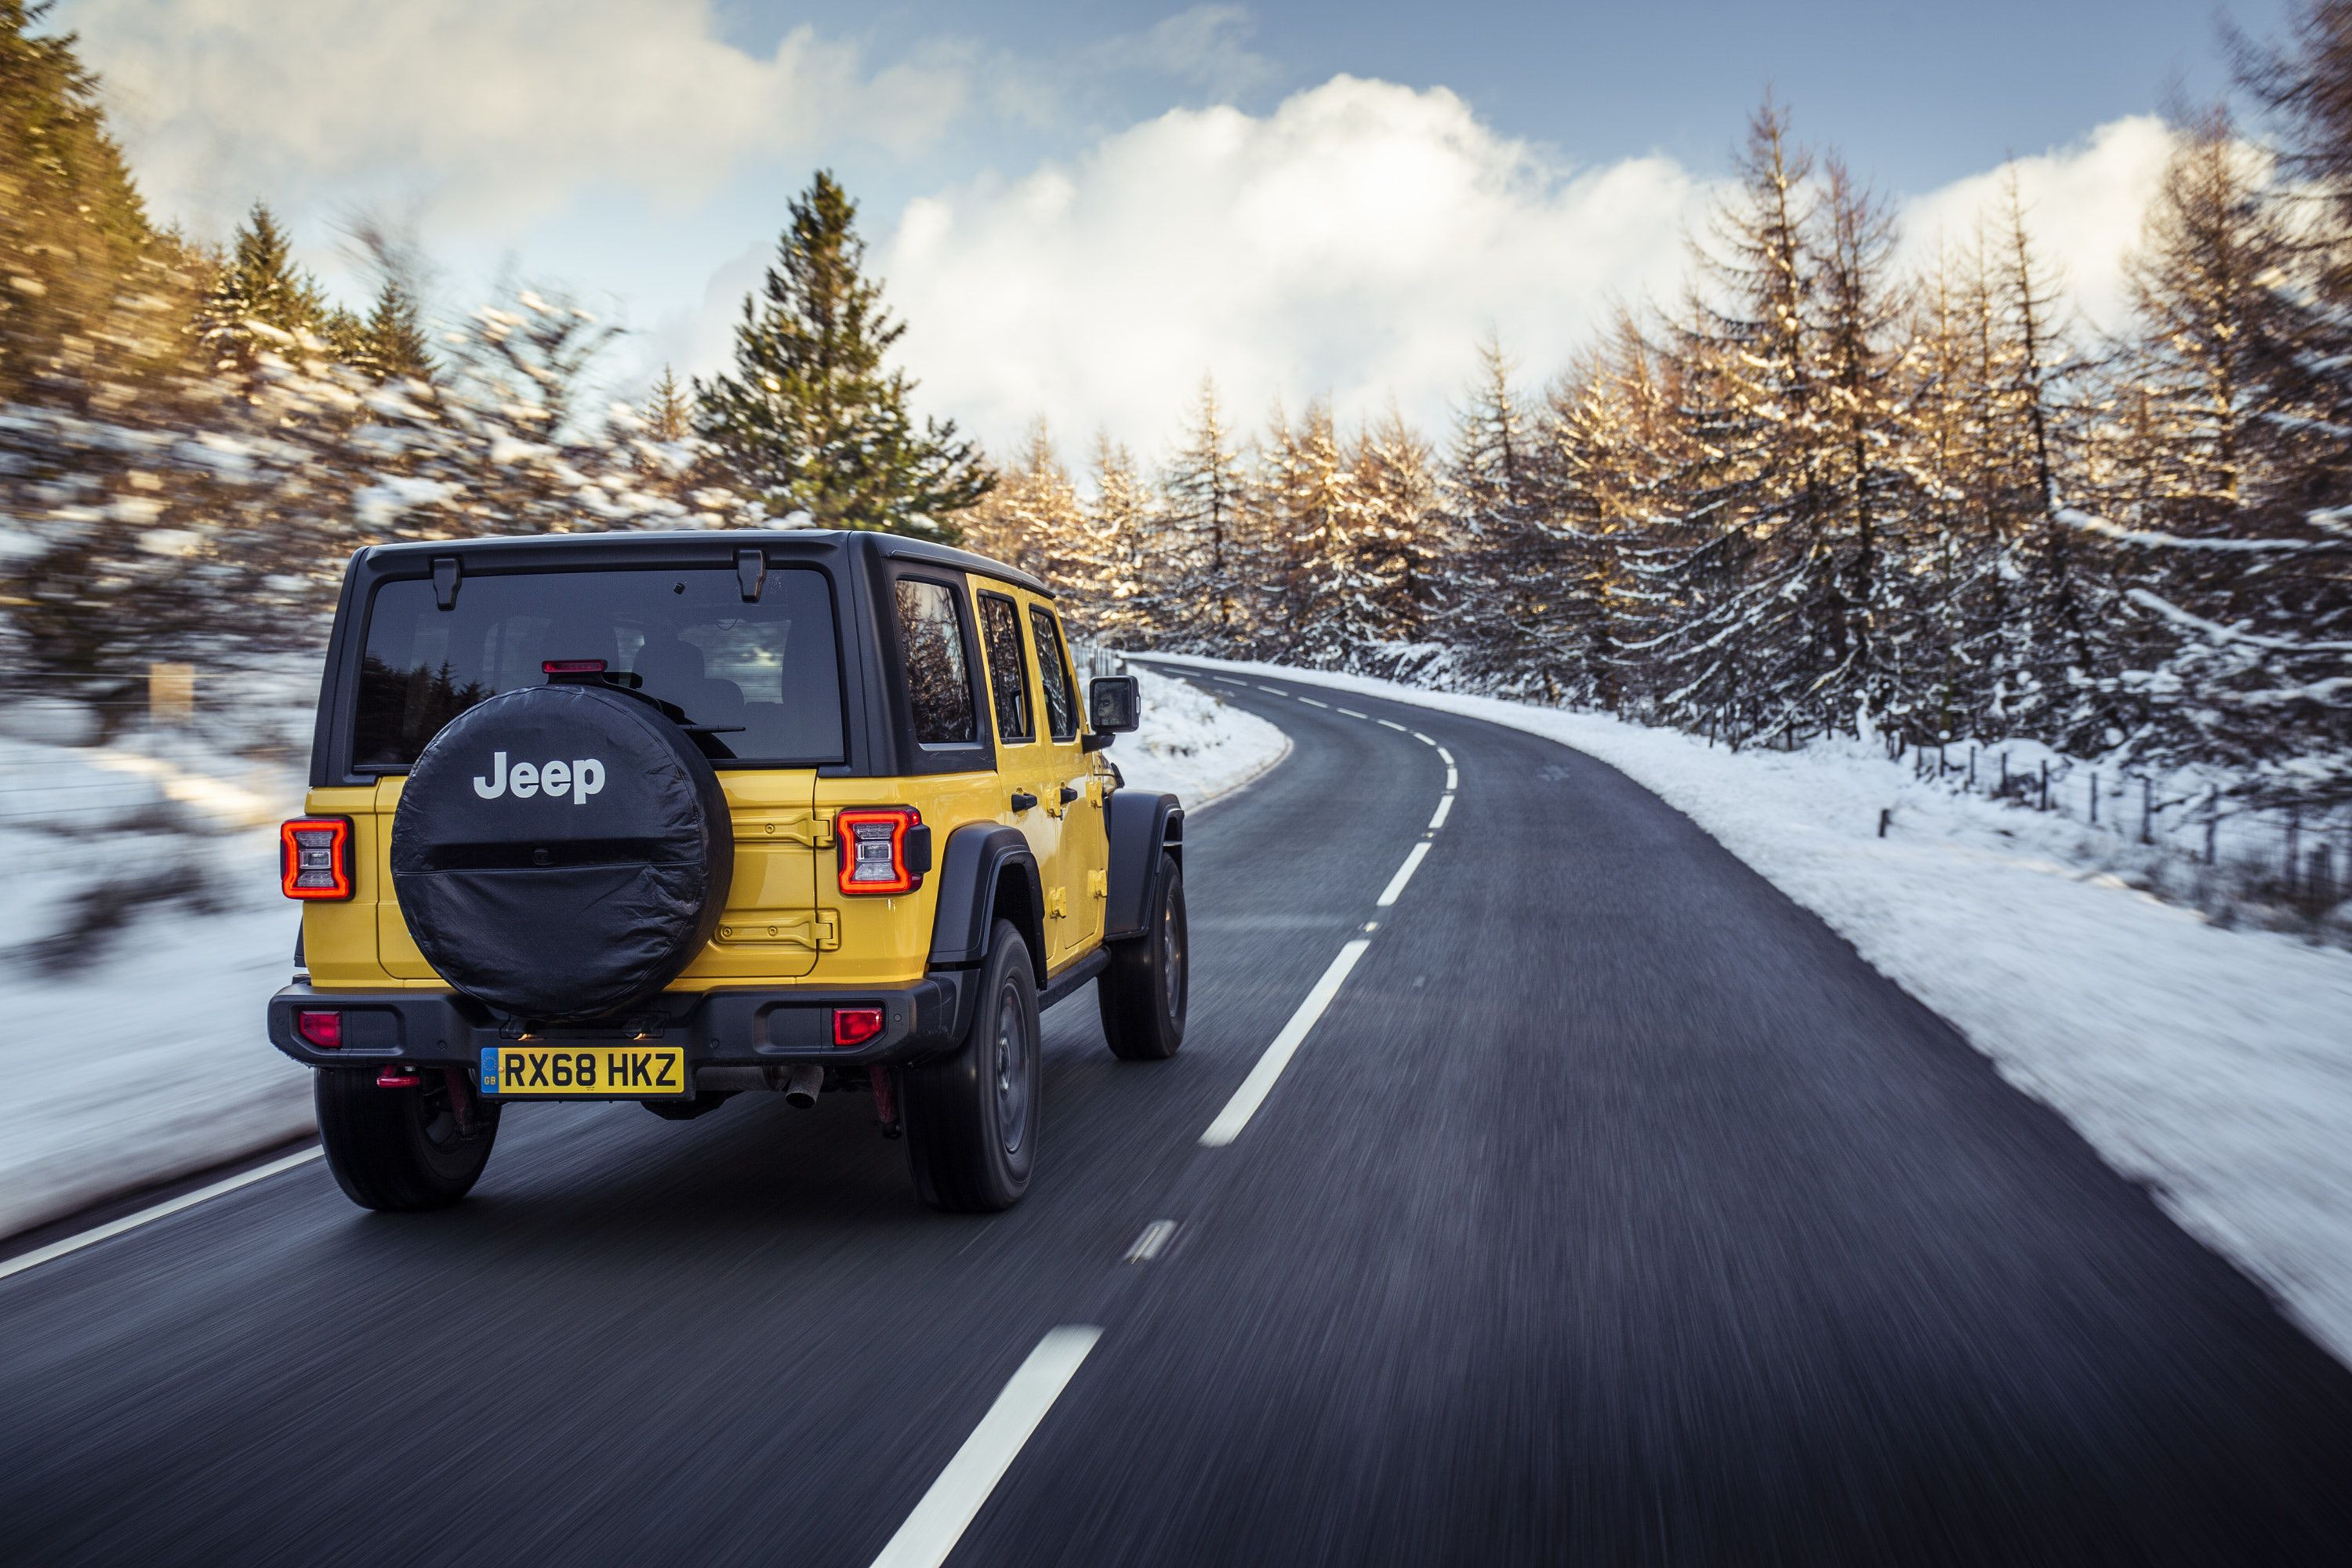 Rear view of Jeep Wrangler driving on a road